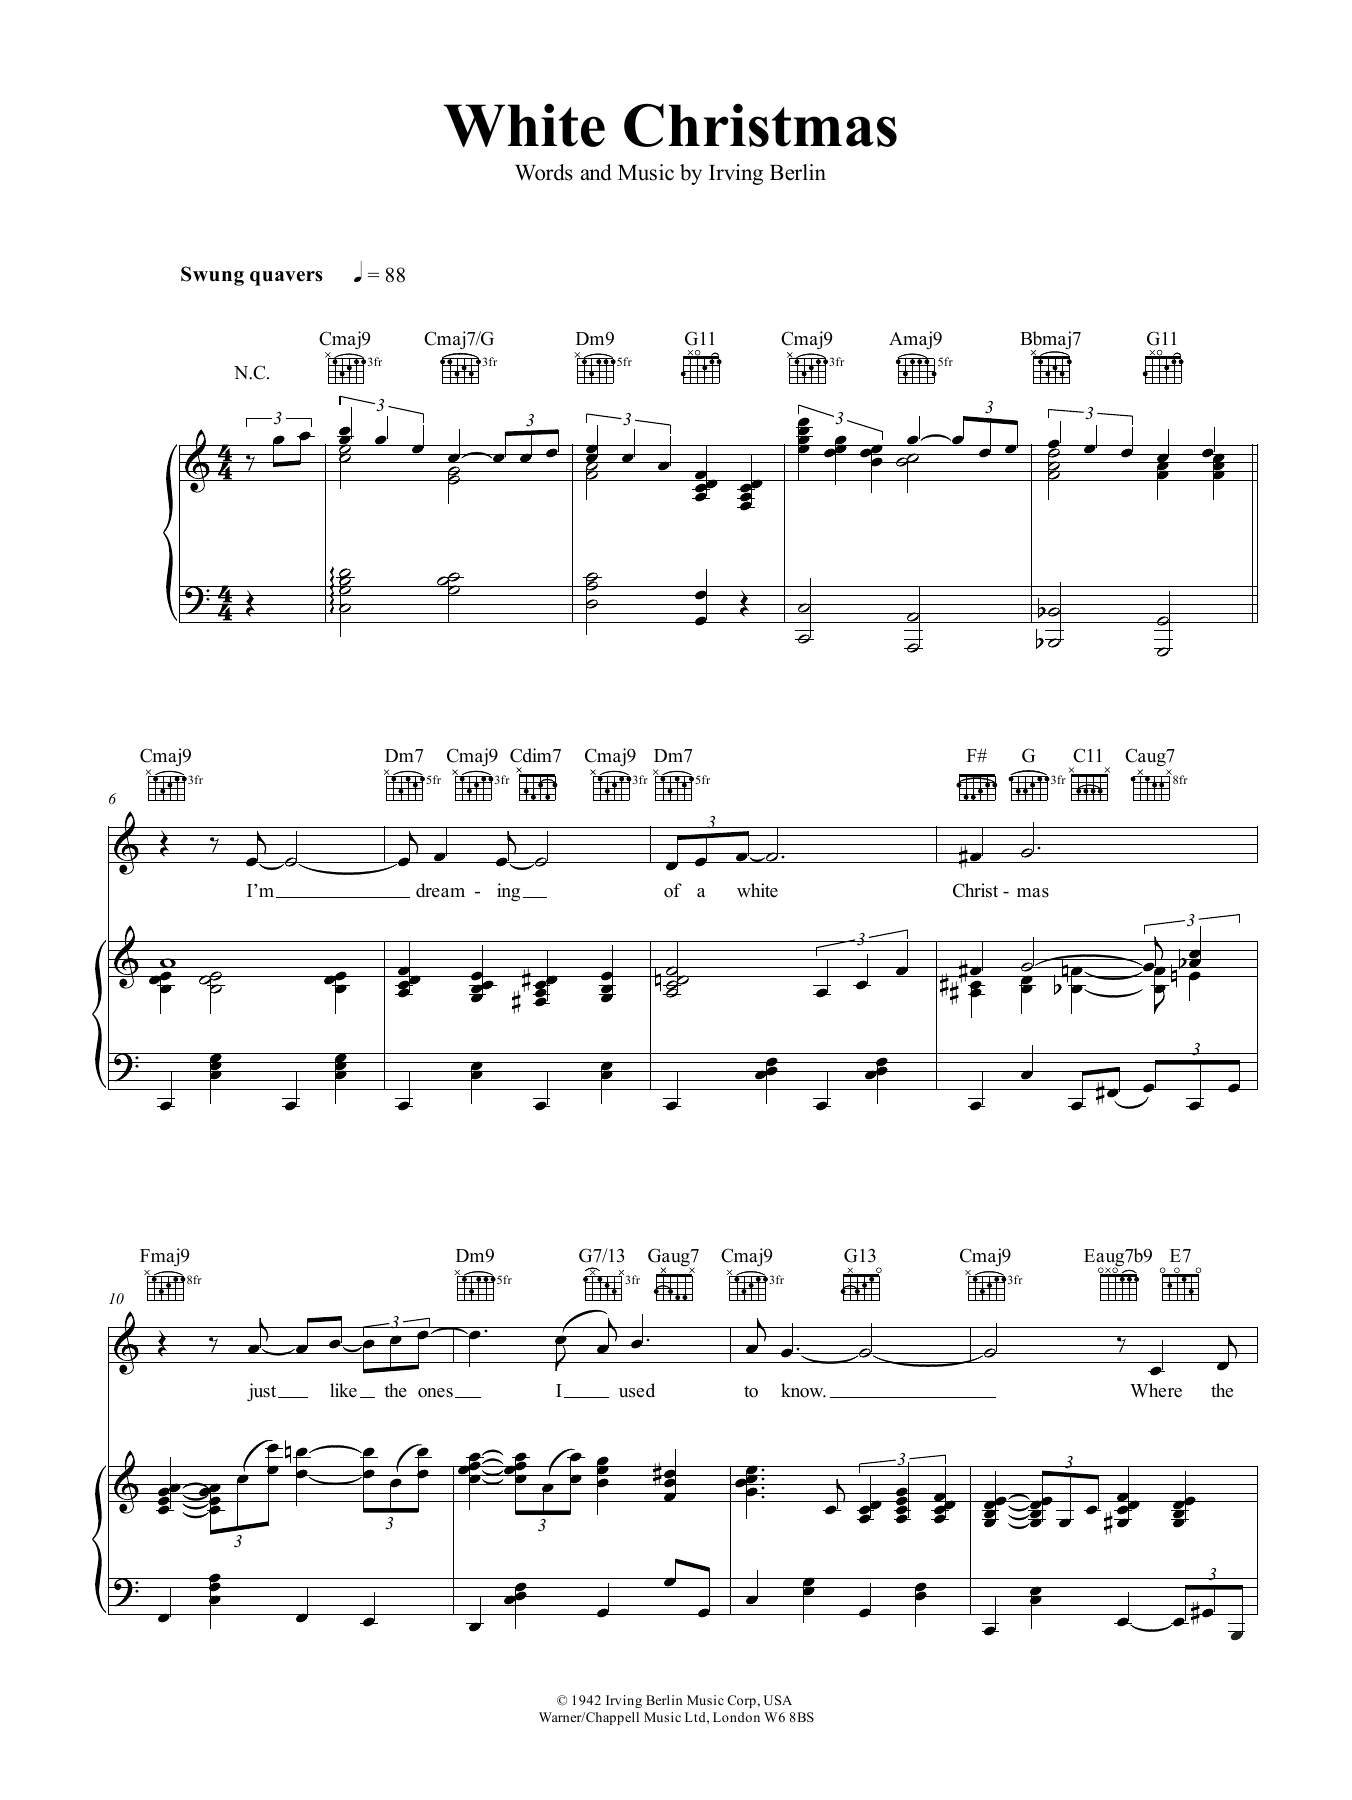 White Christmas Sheet Music | Irving Berlin | Piano, Vocal & Guitar ...